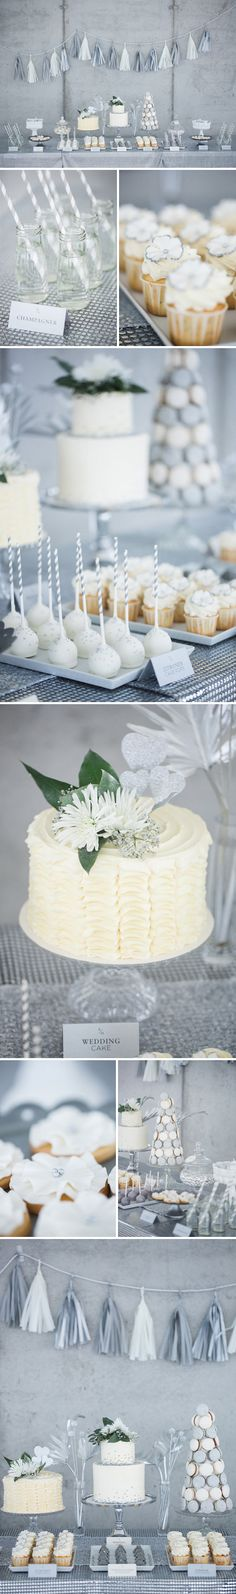 "Candy Buffet ""Concrete meets Glamour"" Photos by lovely Julia Schick"